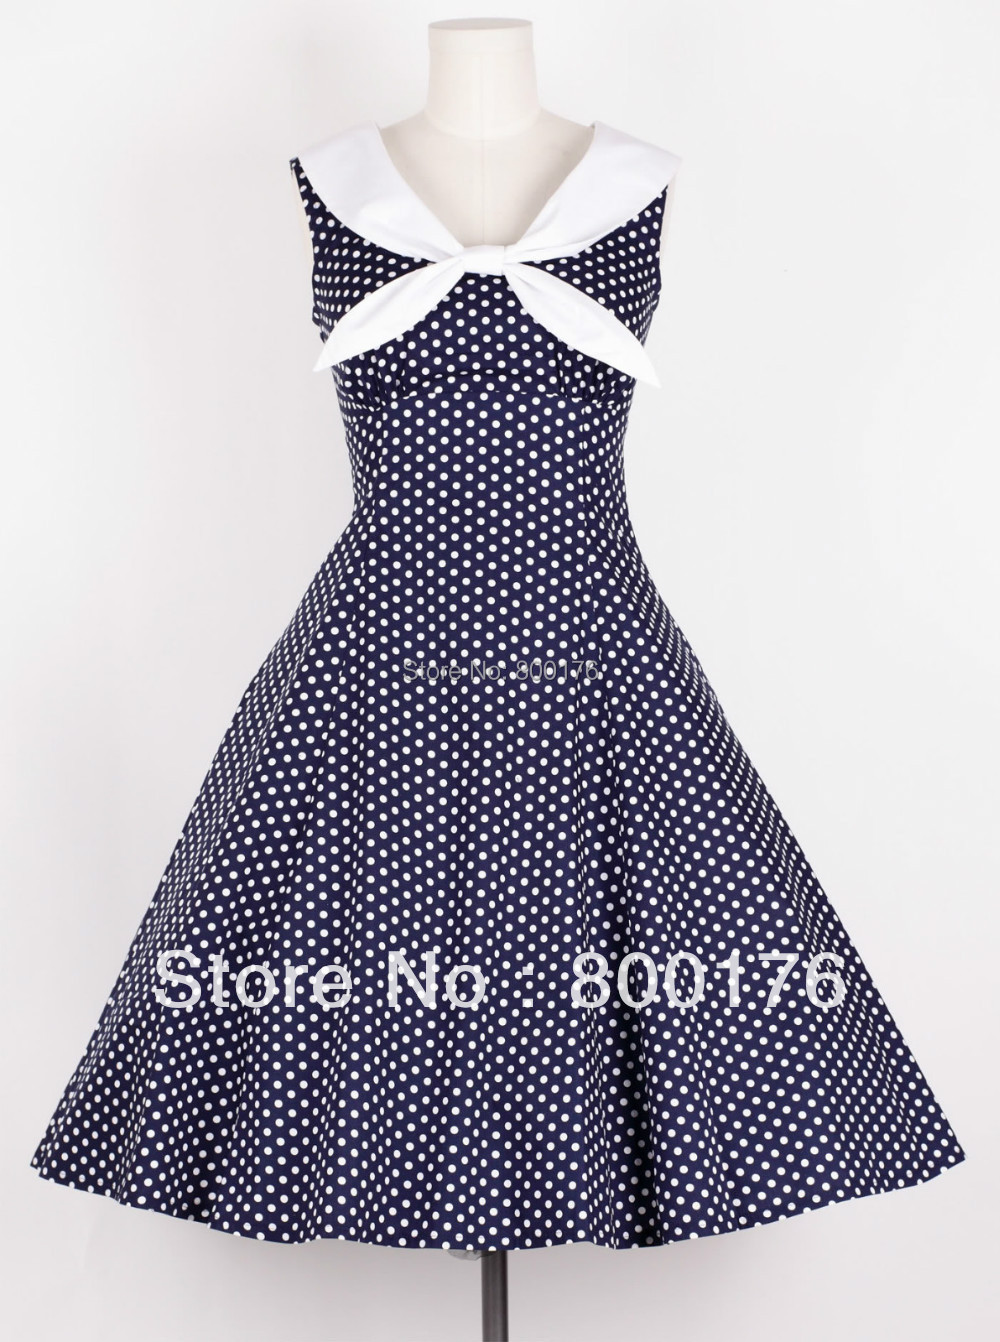 Compare Prices on 1960s Vintage Dresses- Online Shopping/Buy Low ...